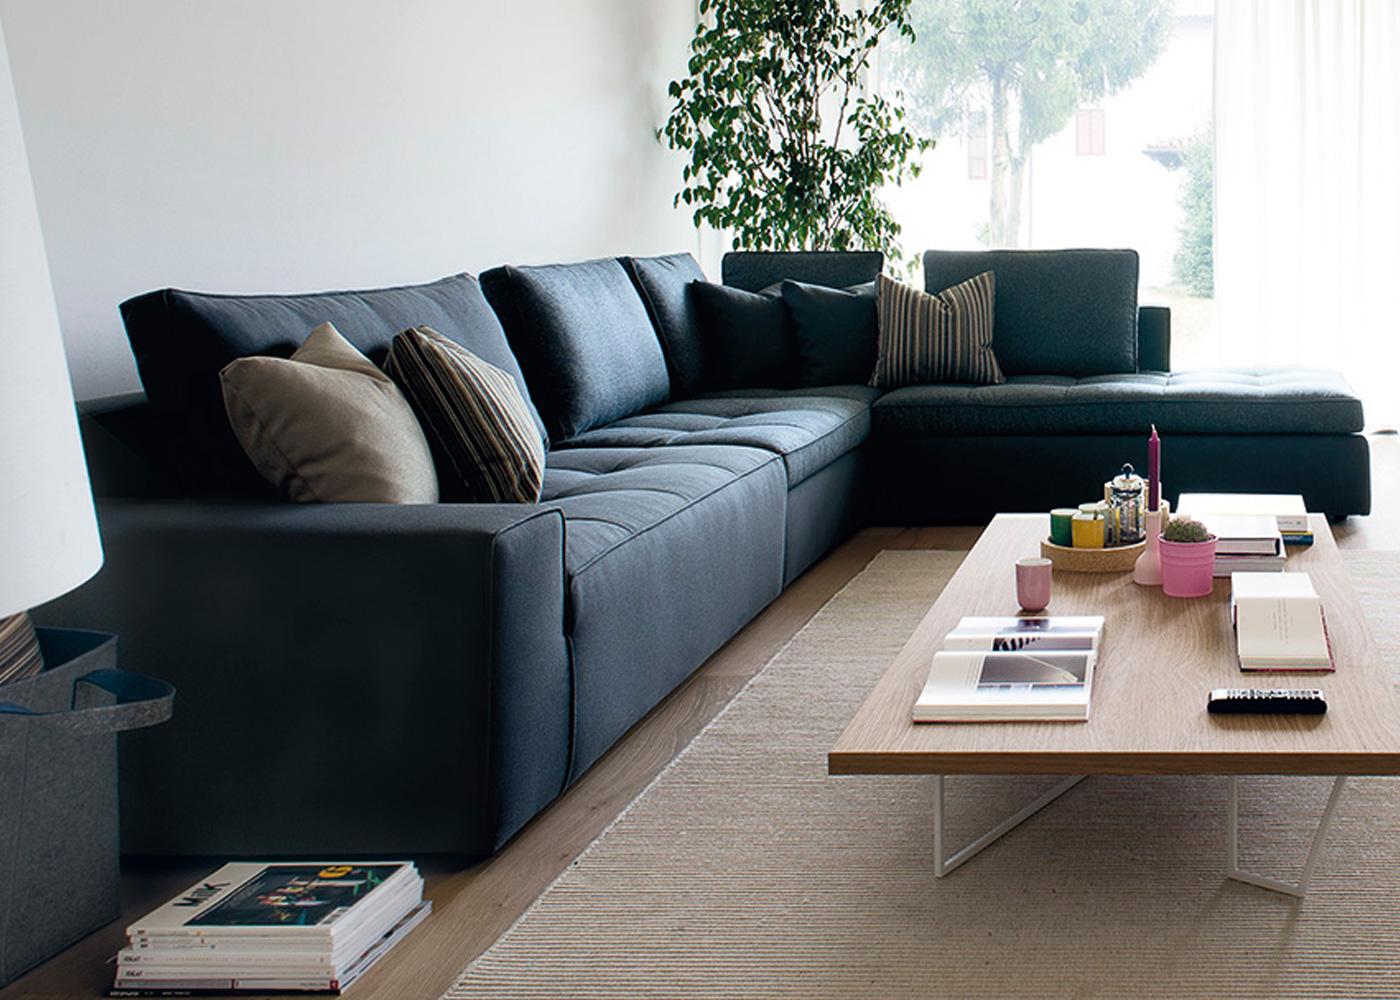 sofa pads uk dual recliner with console calligaris lounge - midfurn furniture superstore